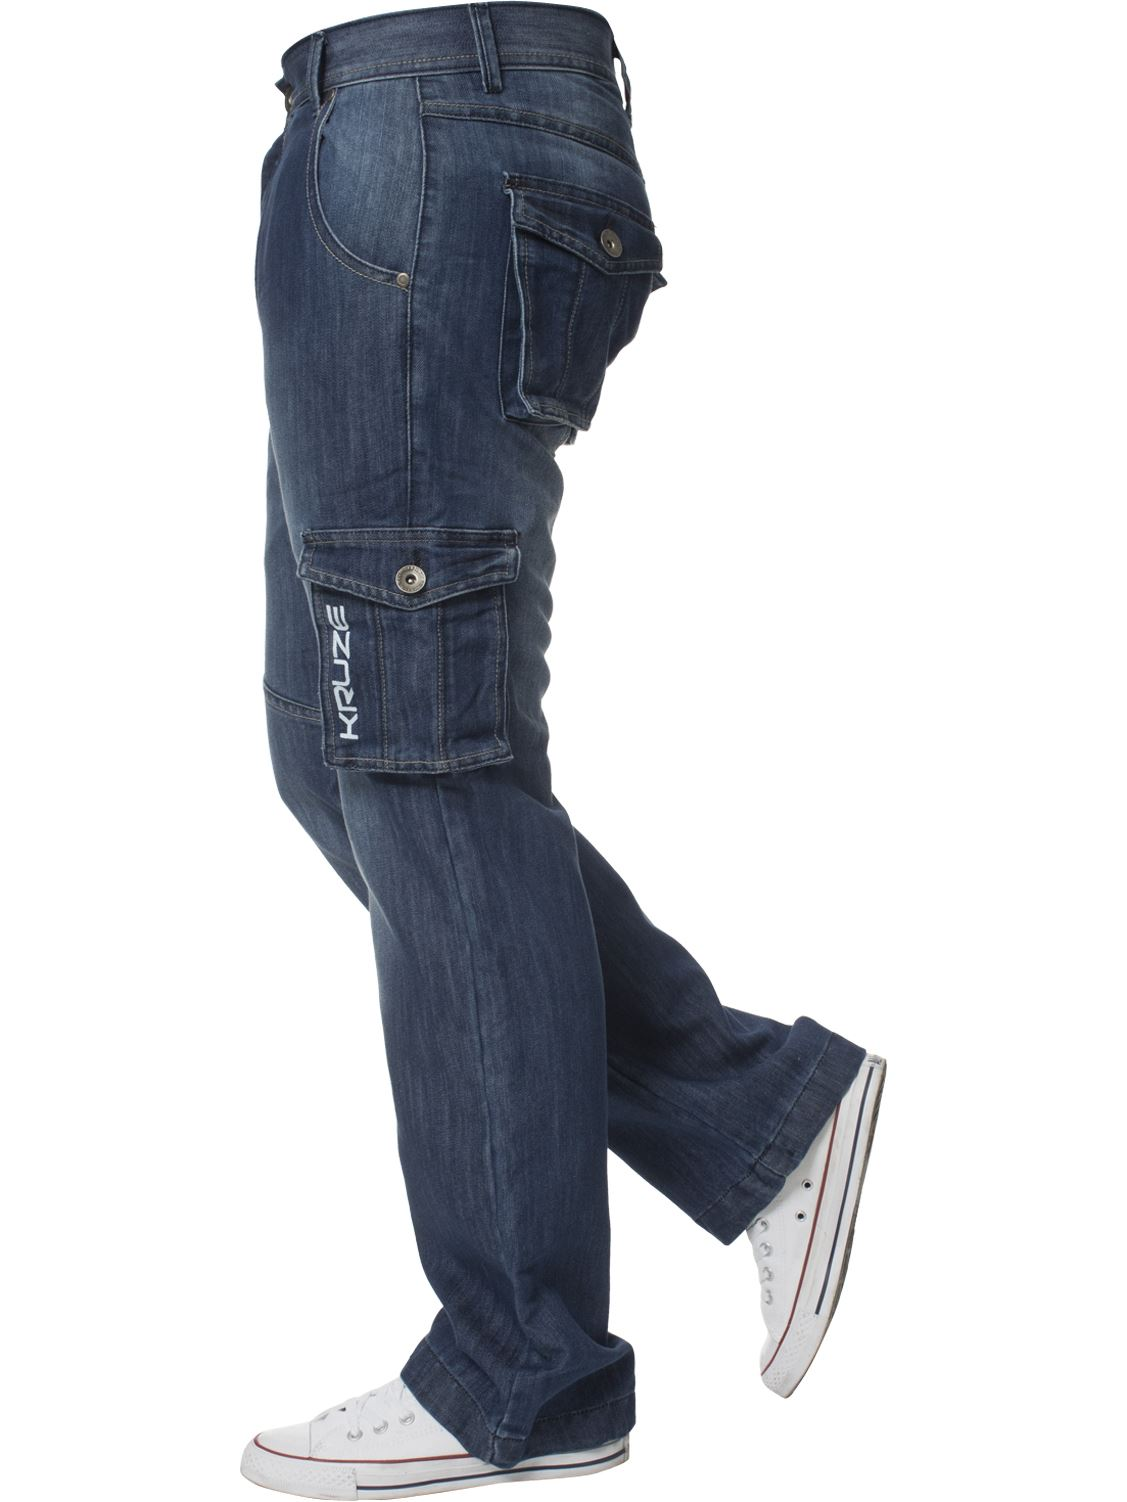 Mens-Cargo-Jeans-Combat-Trousers-Heavy-Duty-Work-Casual-Big-Tall-Denim-Pants thumbnail 54